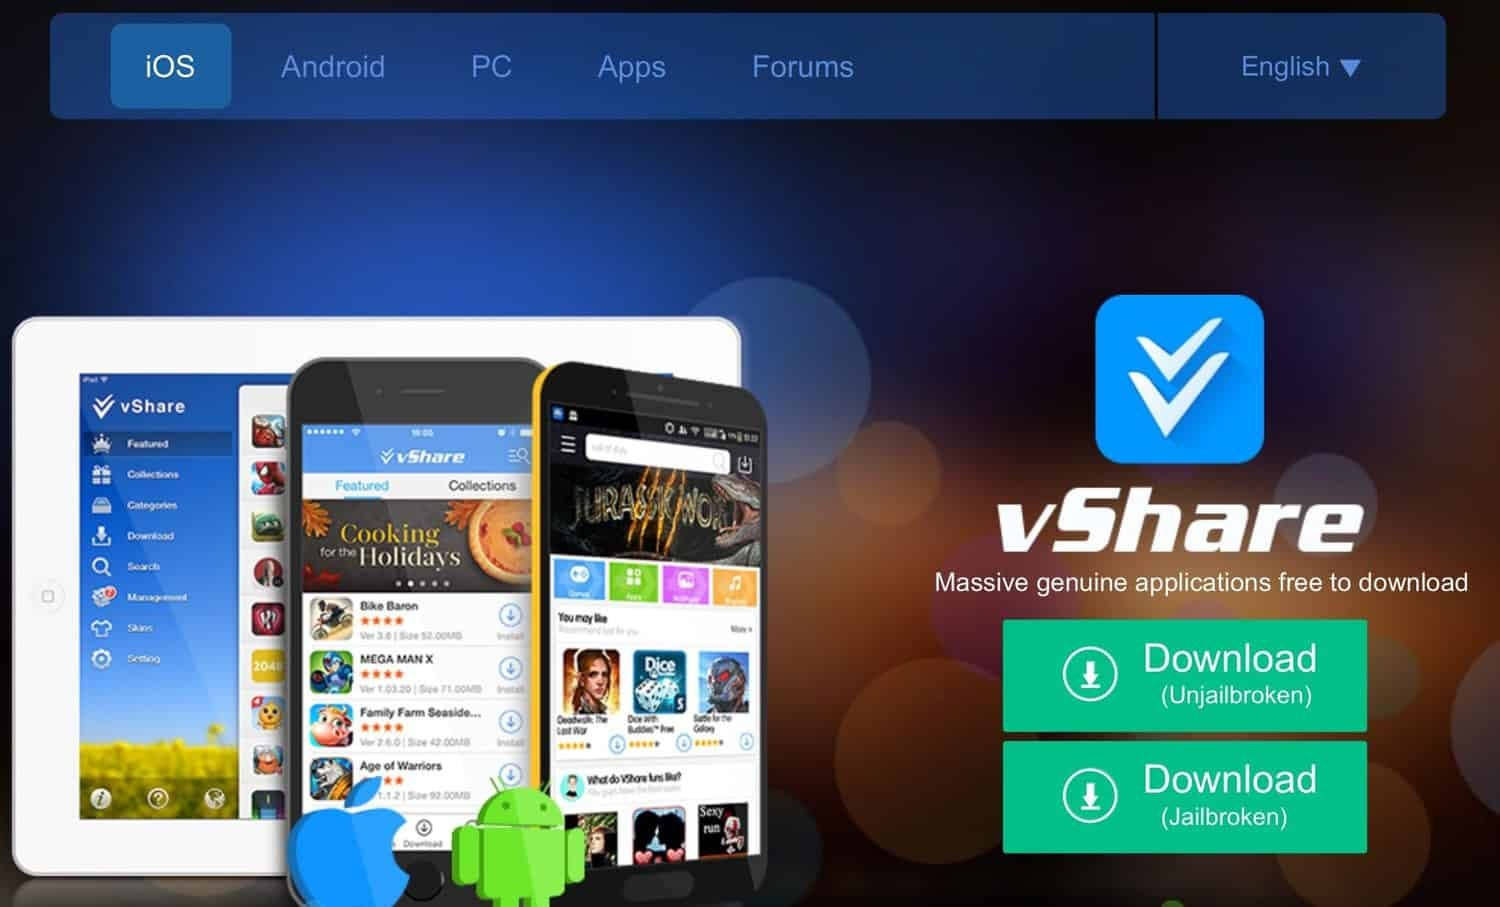 install vShare on iOS 8.3 without jailbreak